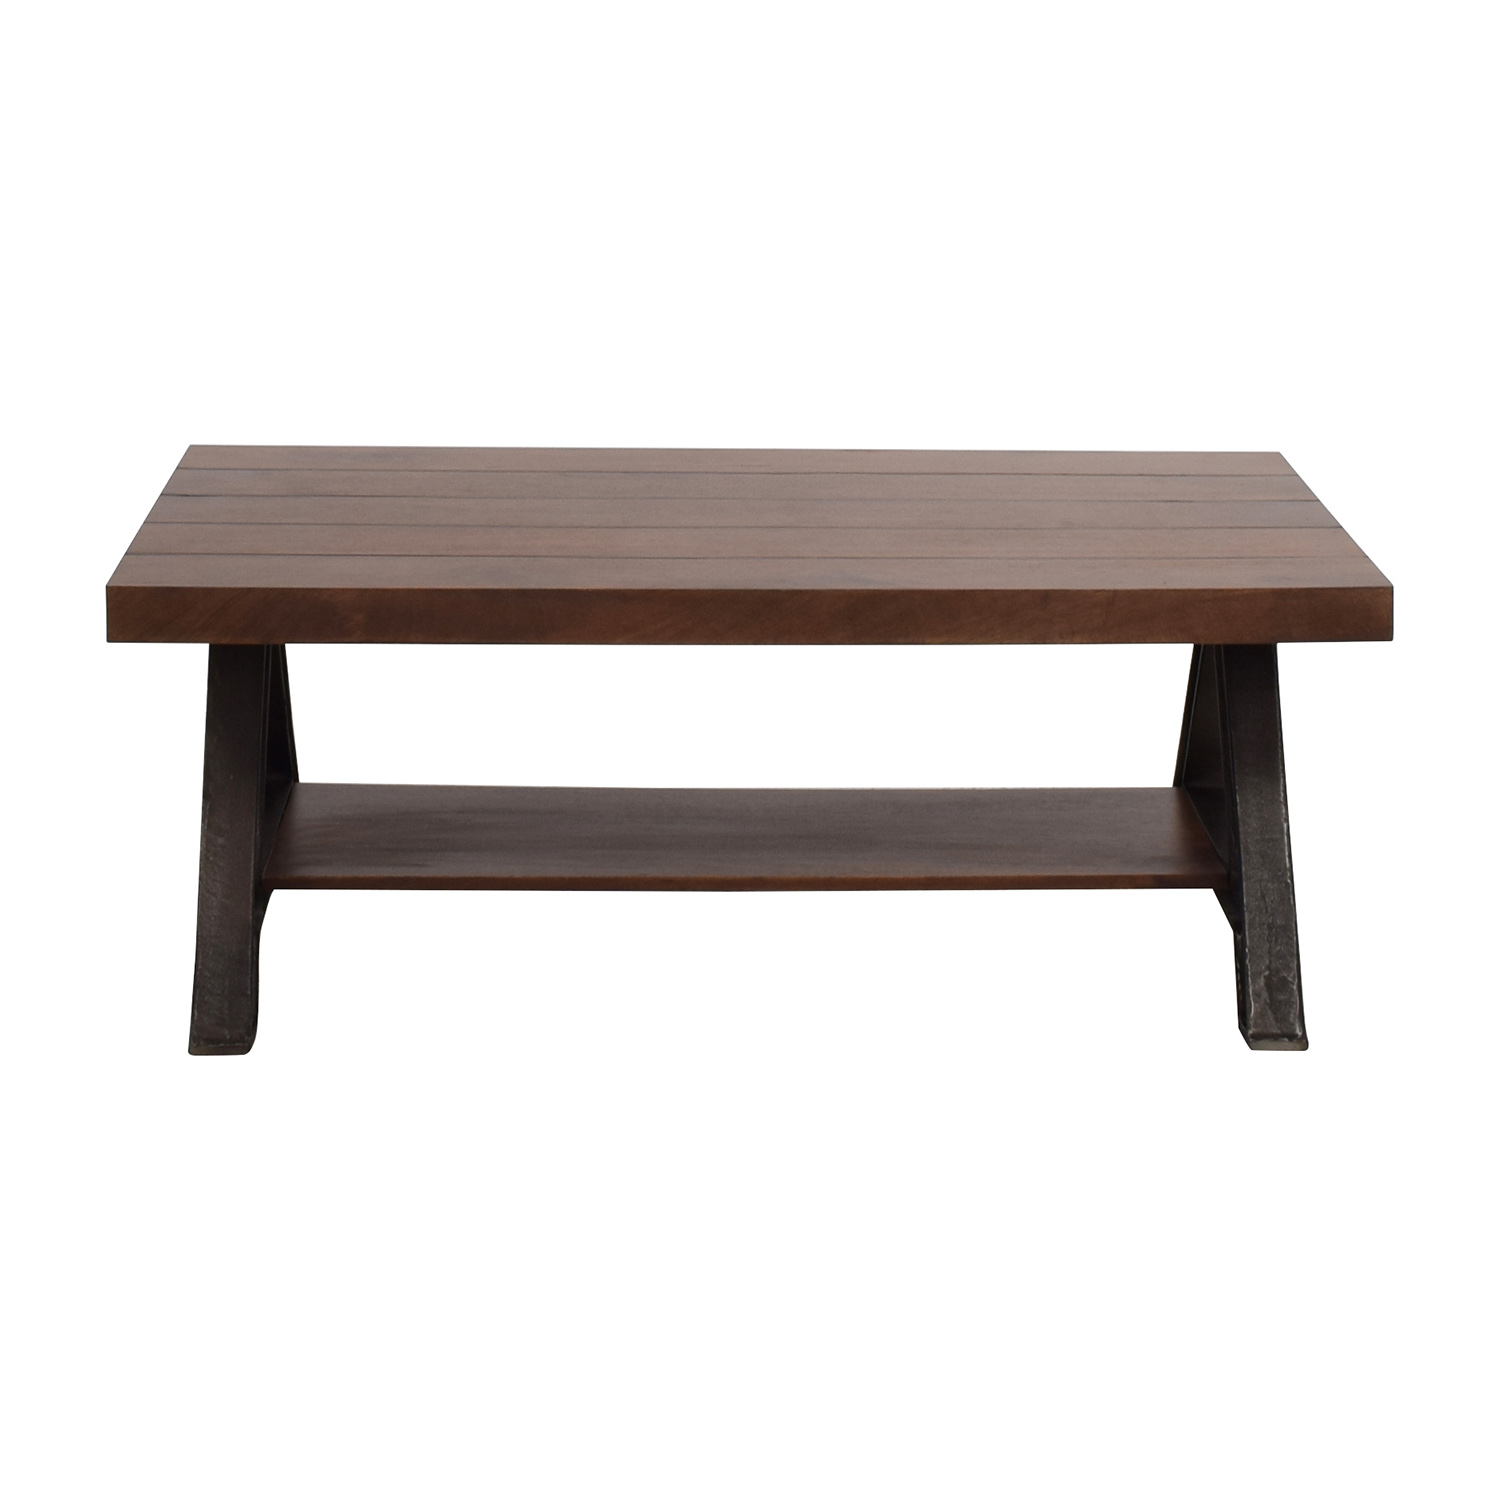 West Elm West Elm Wood And Metal Coffee Table Discount ...